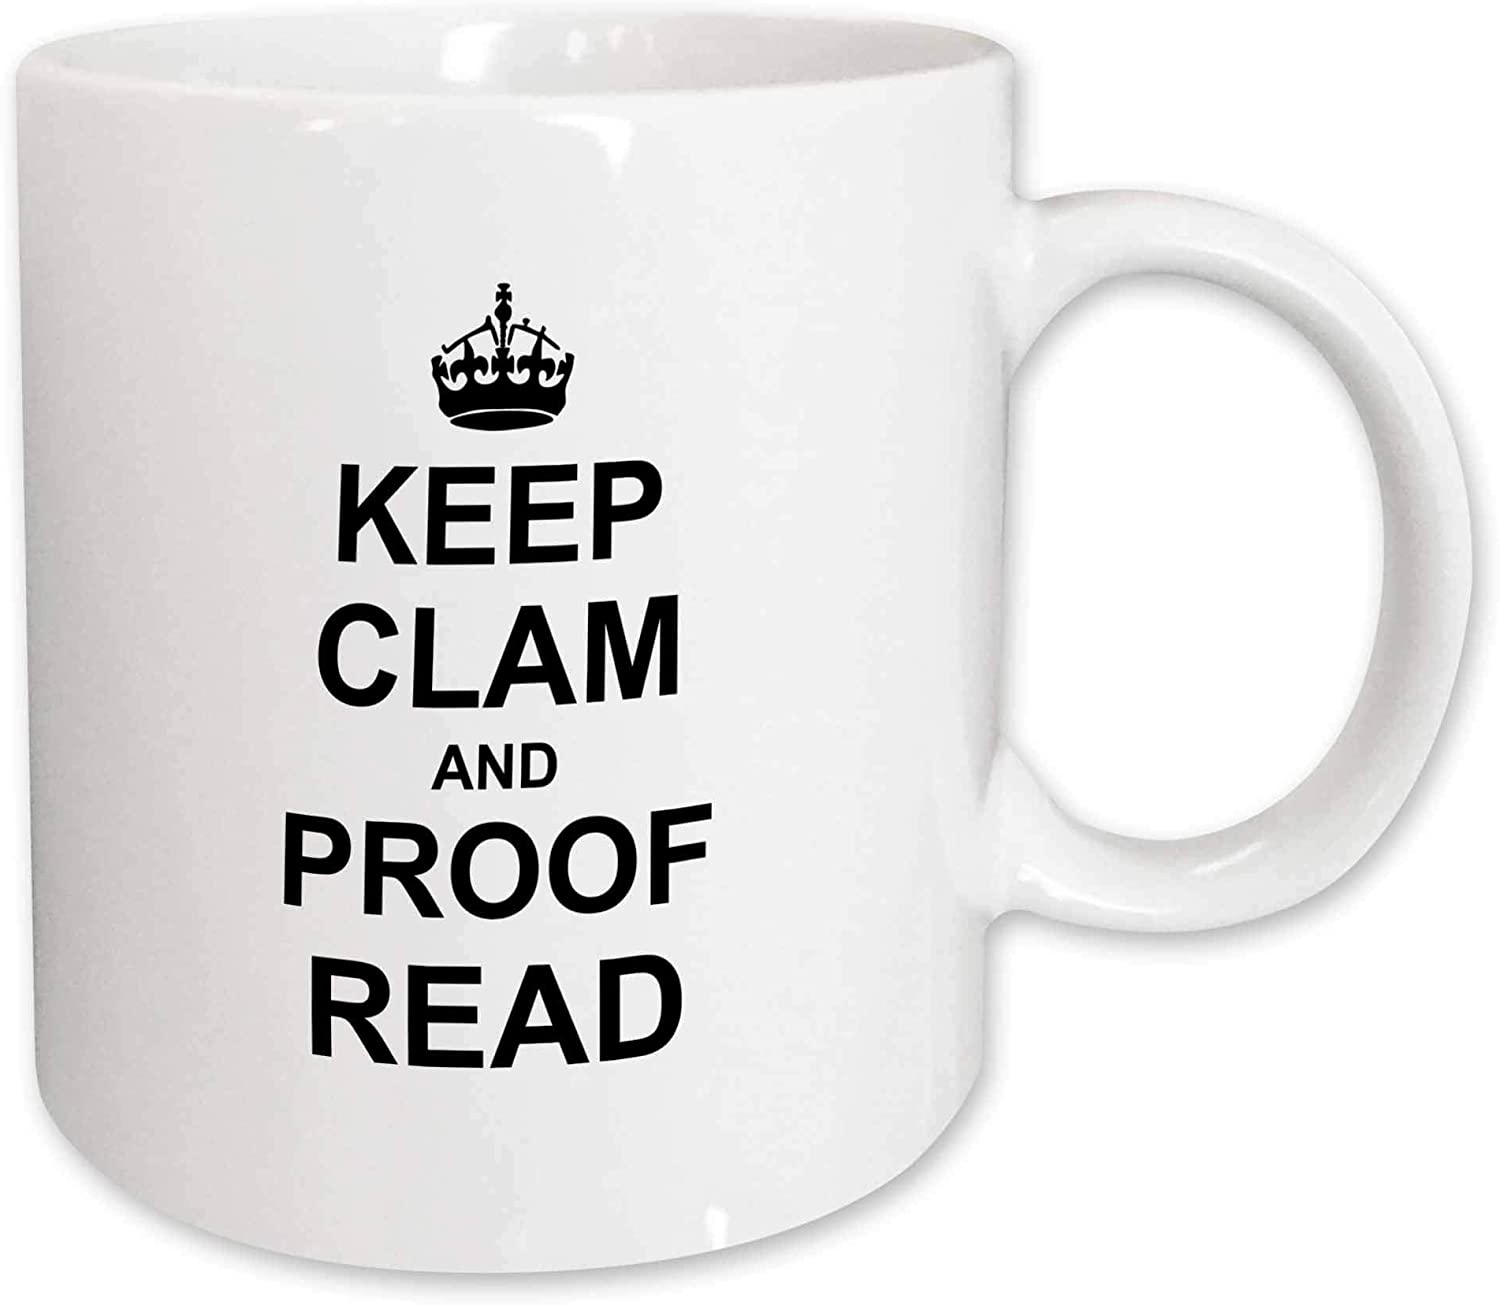 Amazon Com 3drose Keep Calm And Proof Read Funny Proofread Reader Writer Editor Gifts Mug 11 Oz White Kitchen Dining